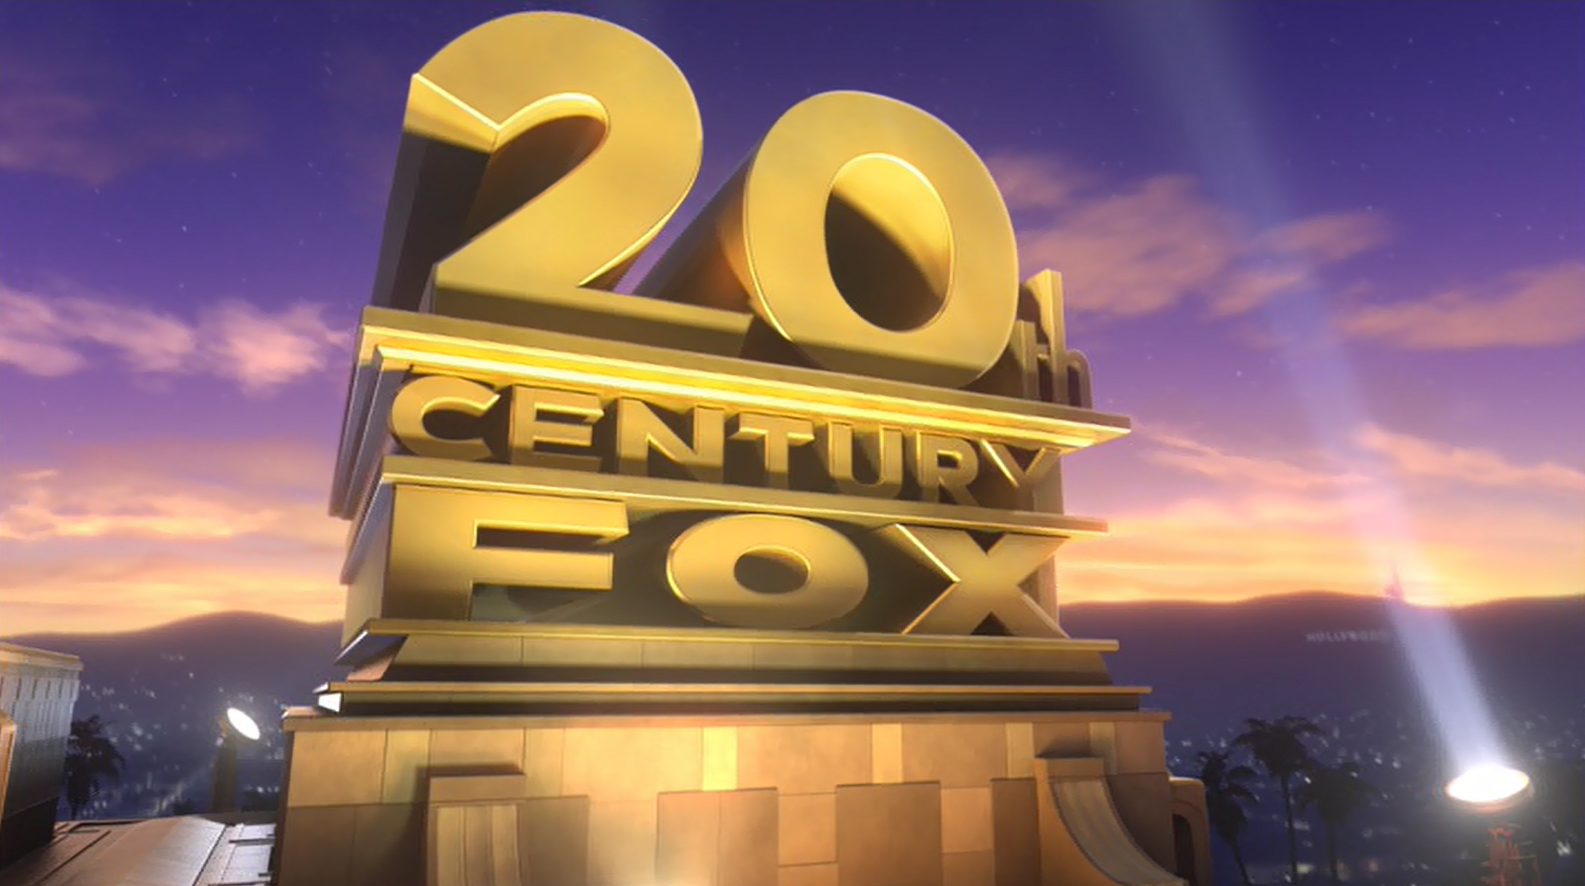 Watch 20th century video